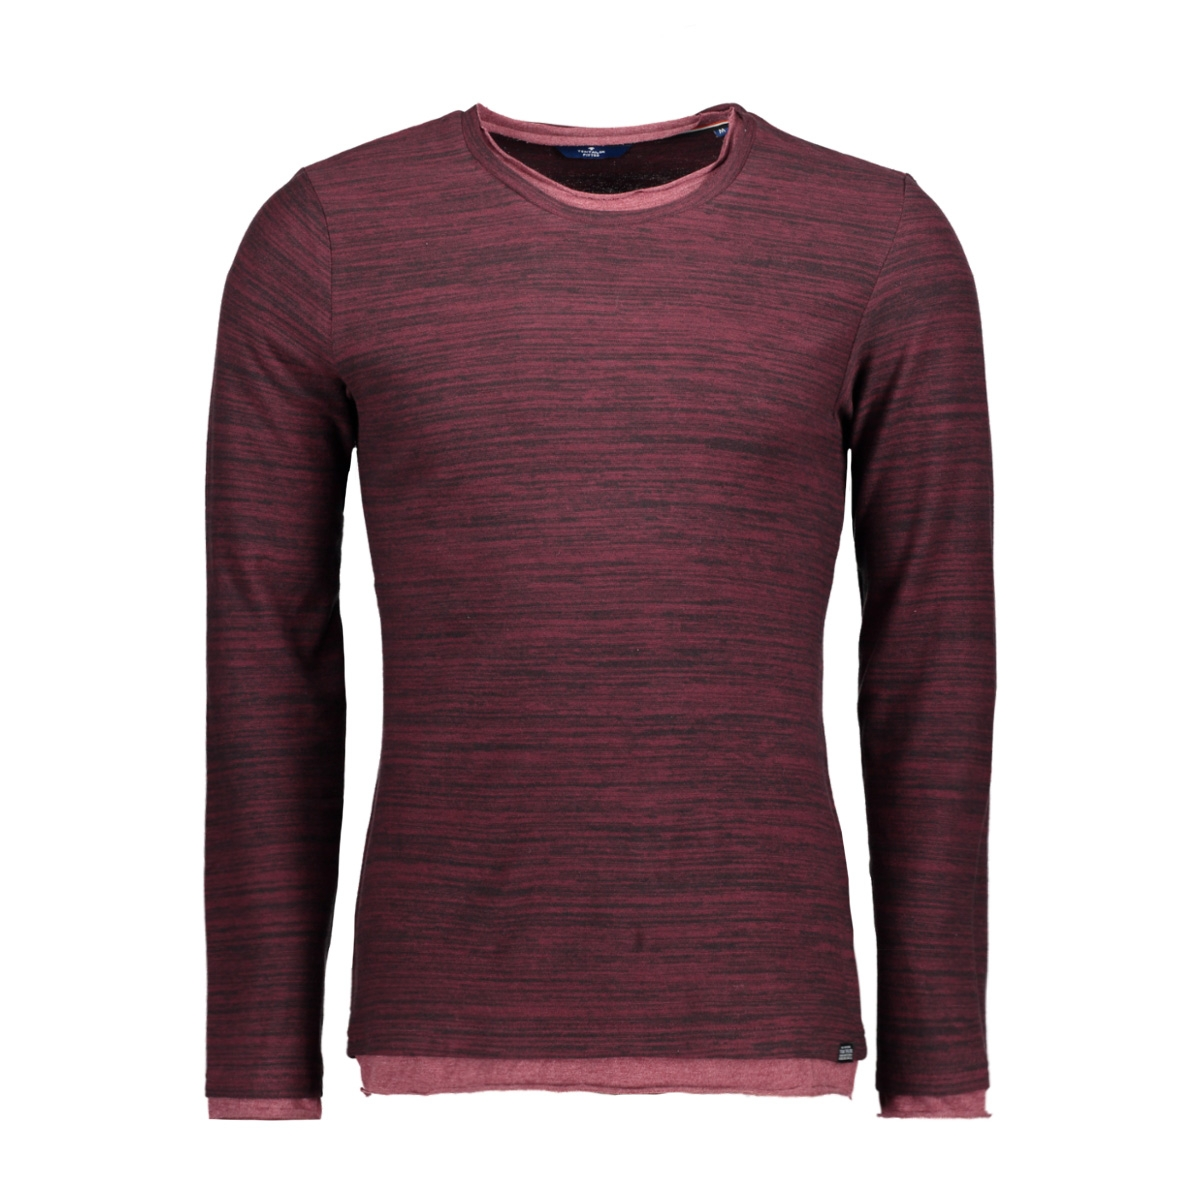 Tom tailor t shirt 4663 for Tailored t shirts online